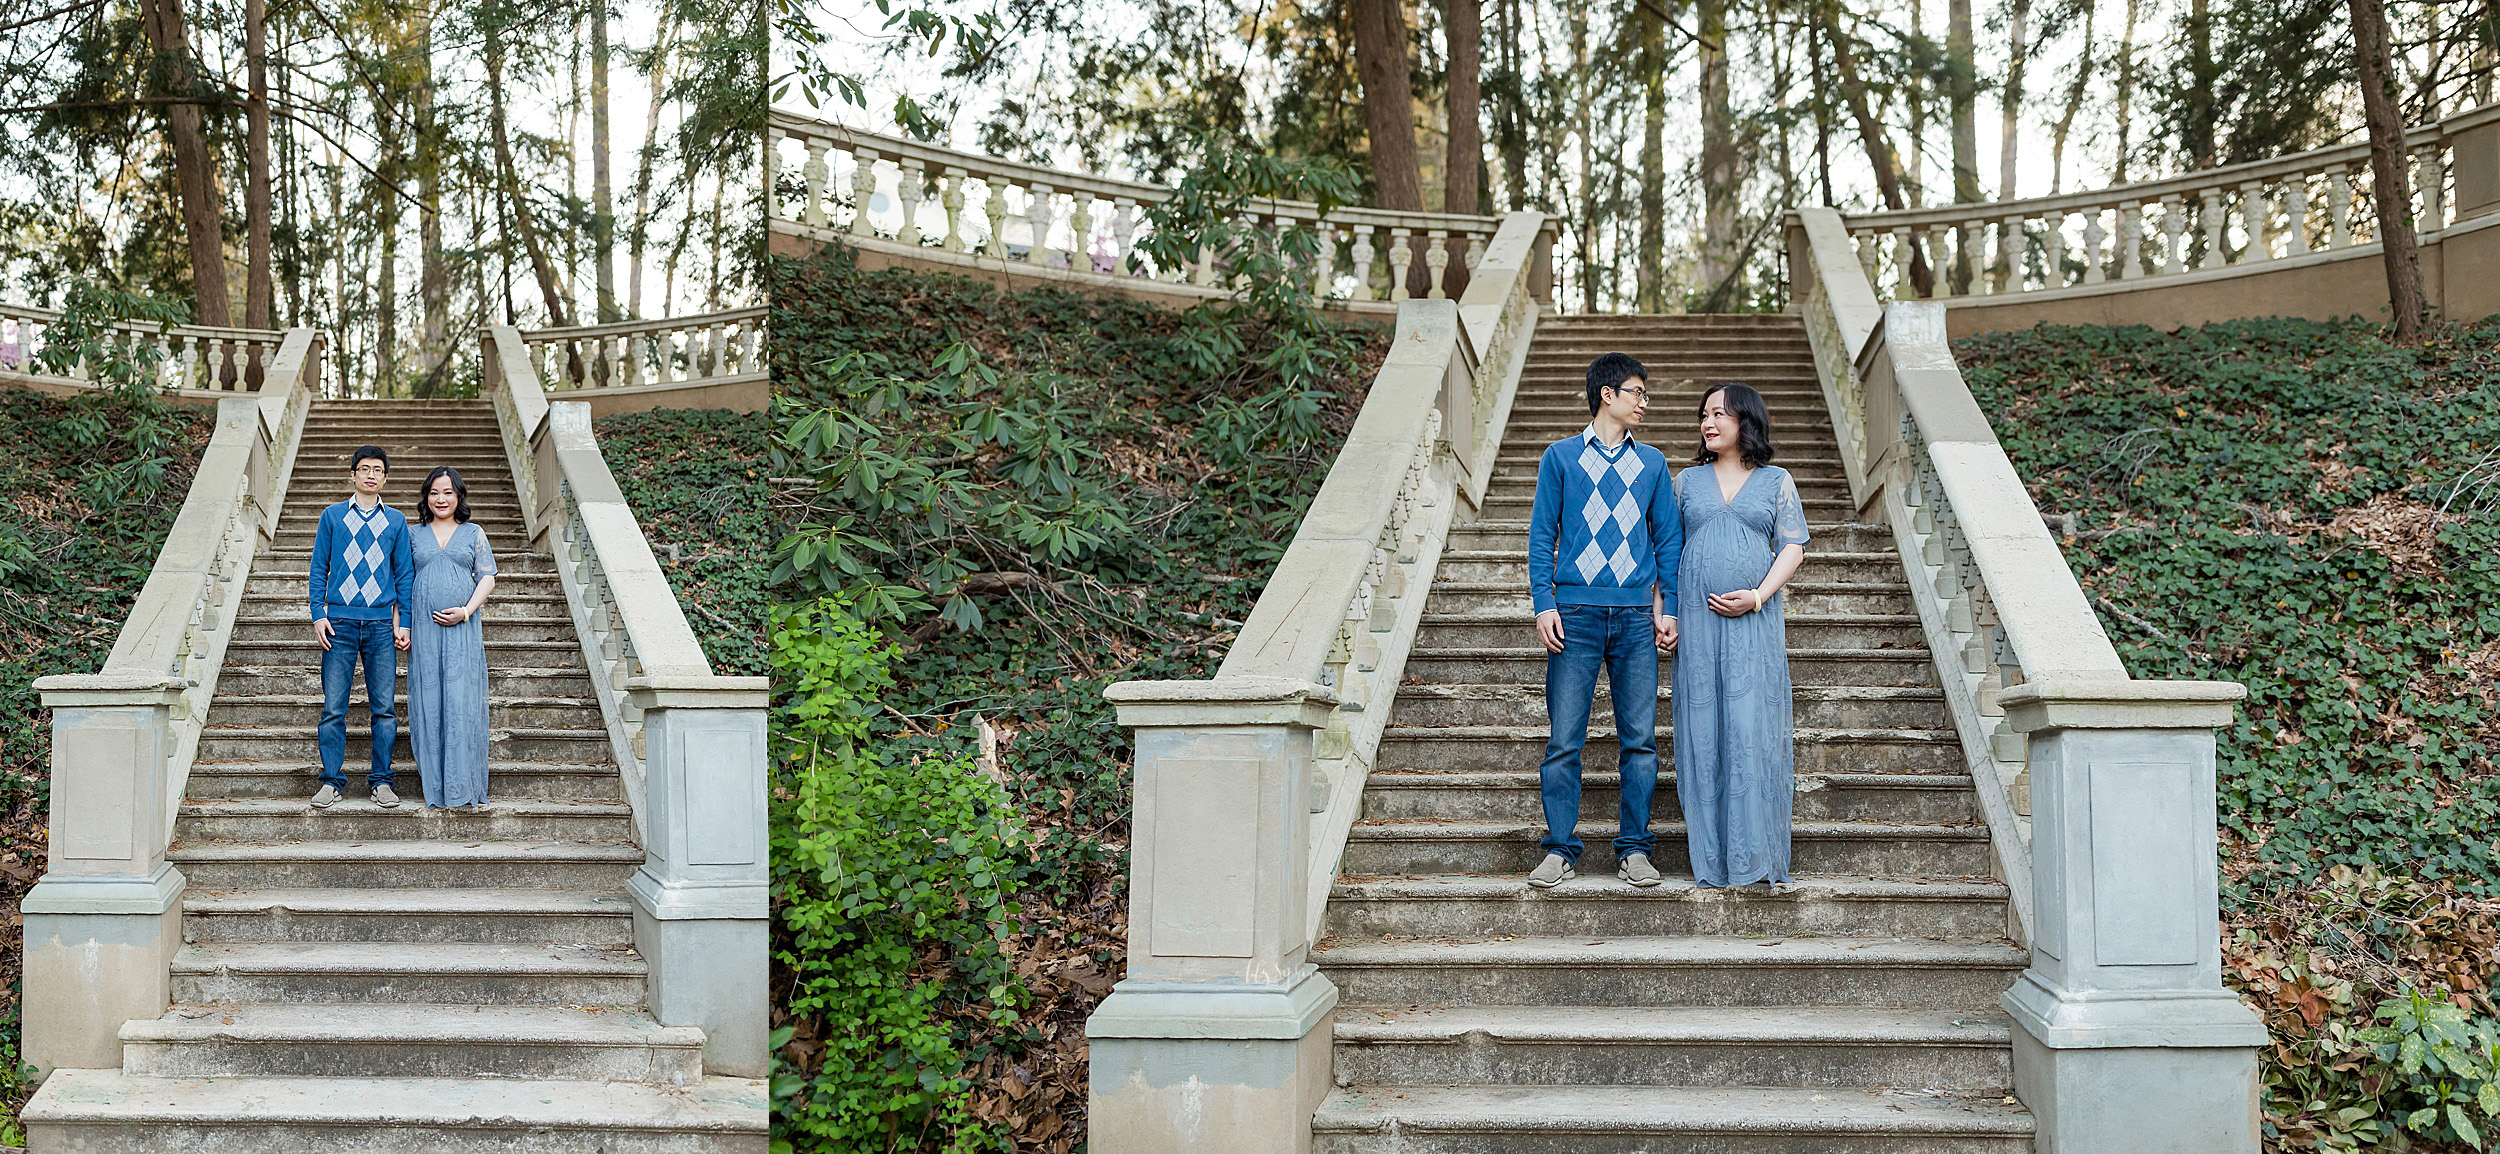 atlanta-druid-hills-decatur-sandy-springs-buckhead-virginia-highlands-west-end-decatur-lily-sophia-photography-outdoor-sunset-gardens-maternity-expecting-baby-boy_1309.jpg